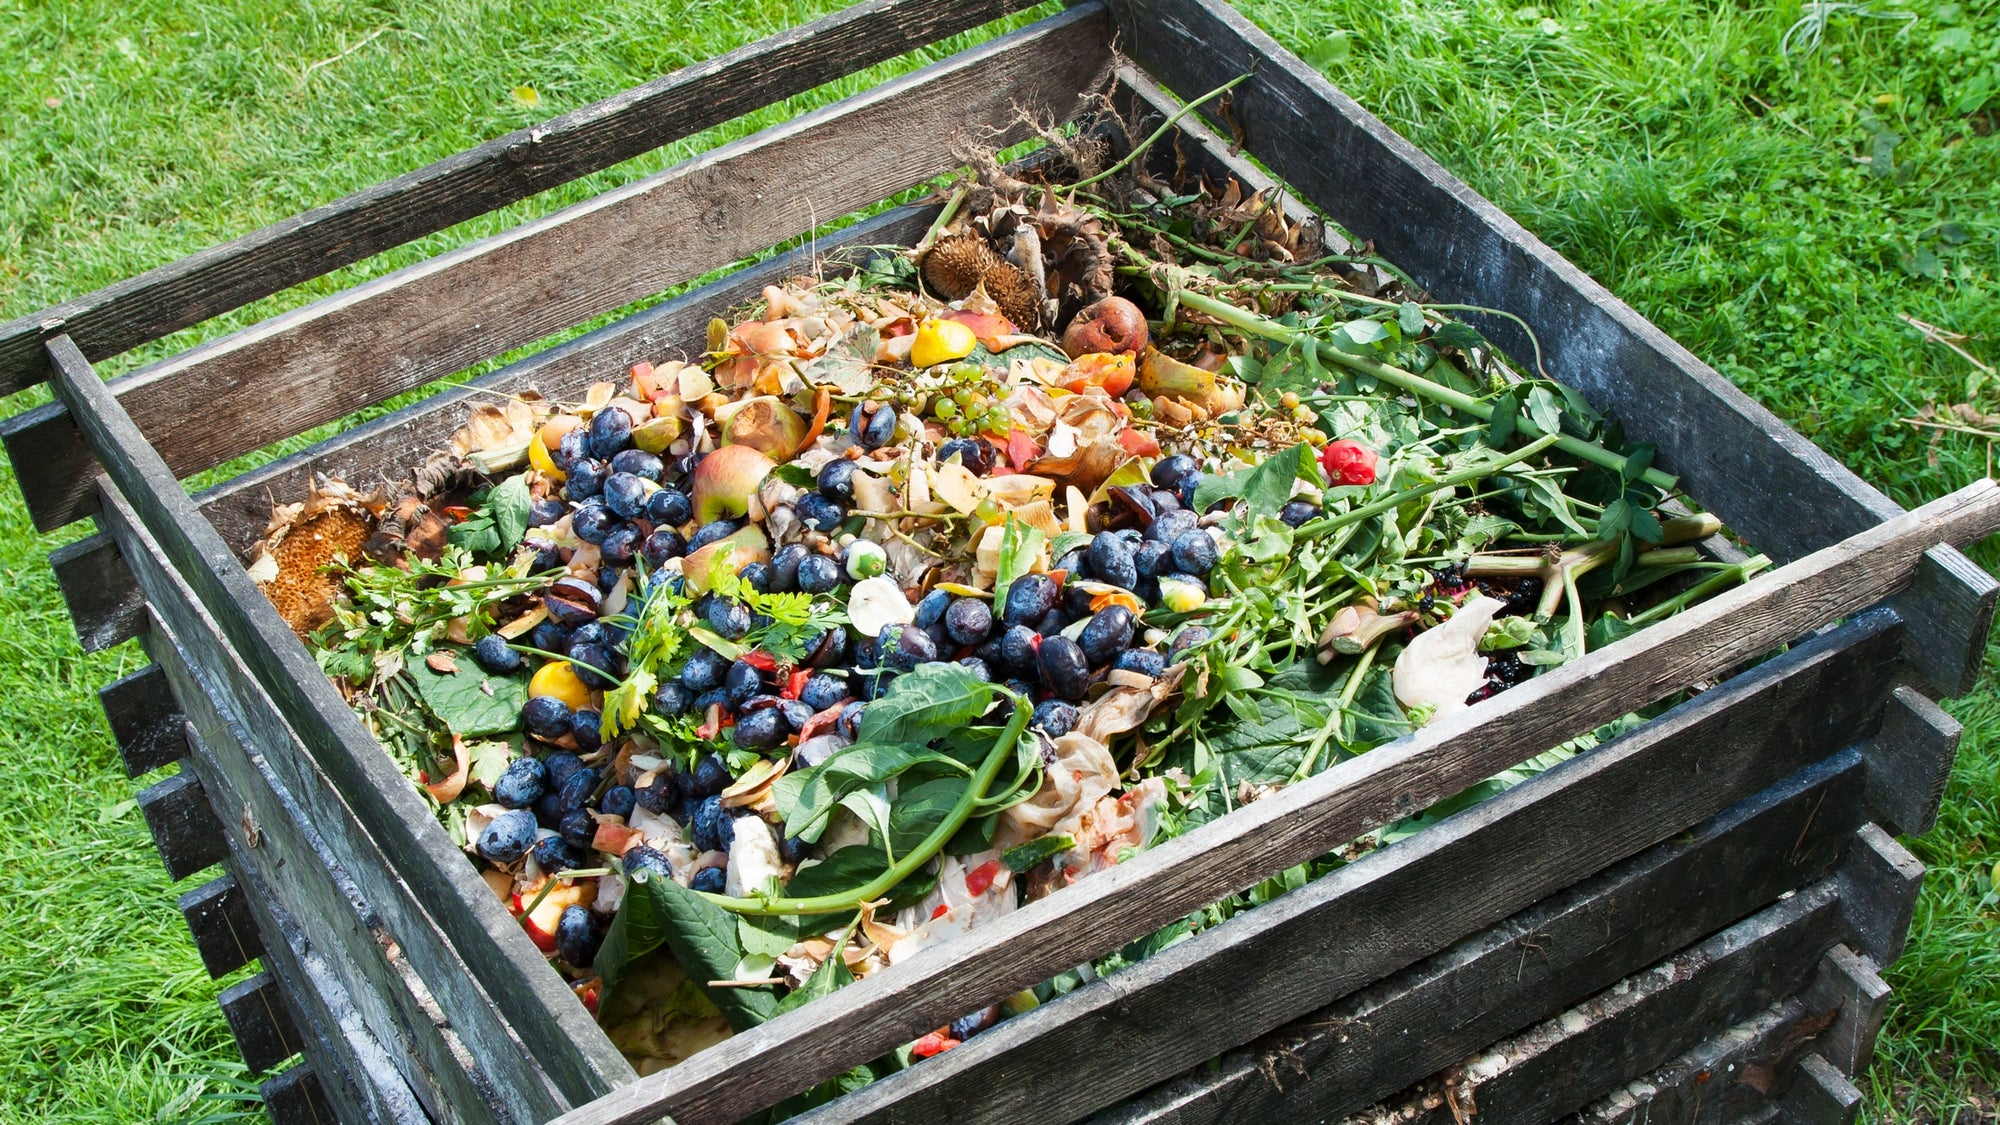 Composting Helps Your Soil & Your Soul